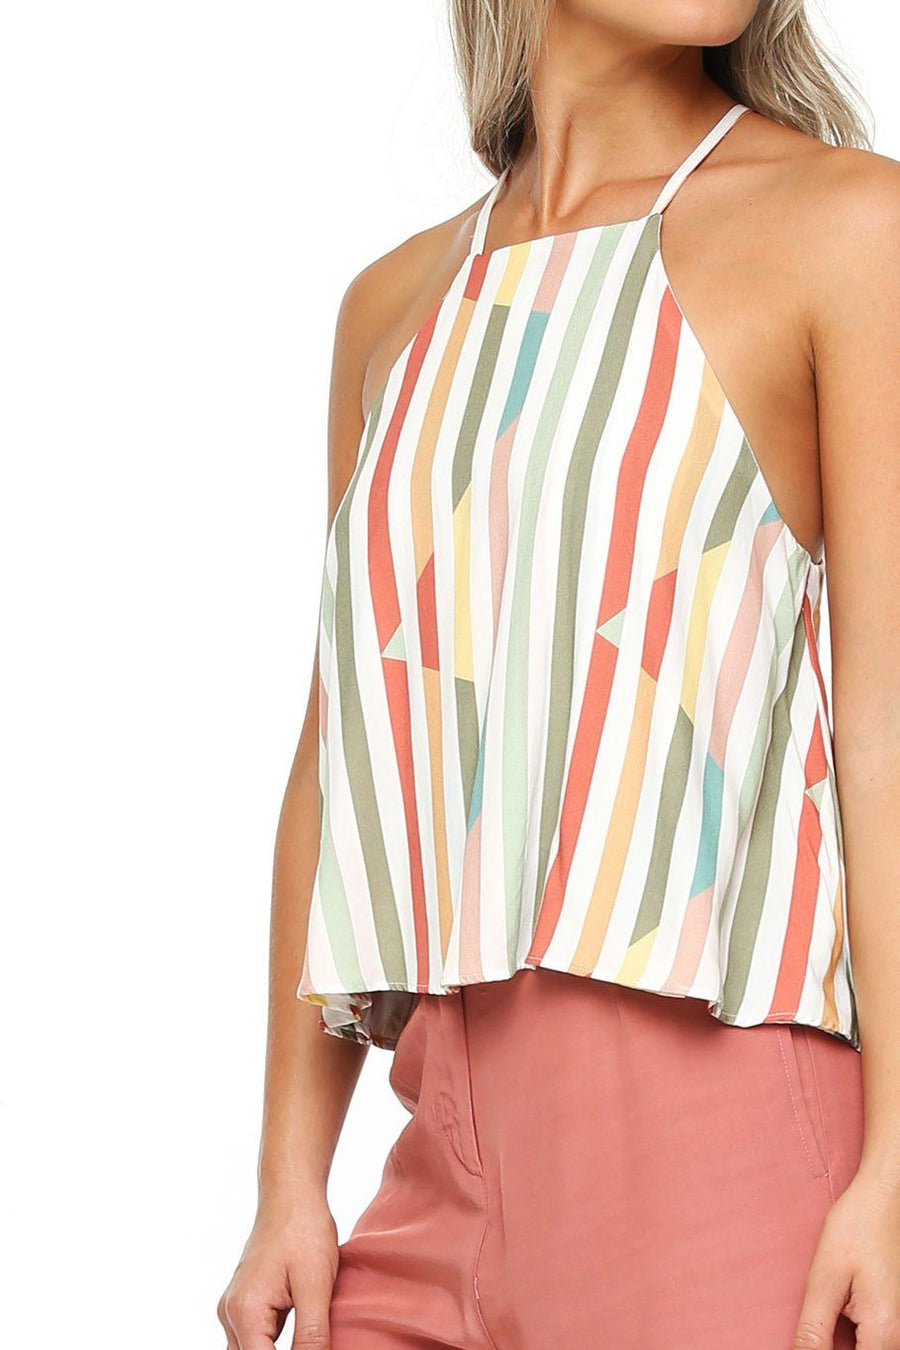 Maui Swing Top - Multi Stripe - Shore